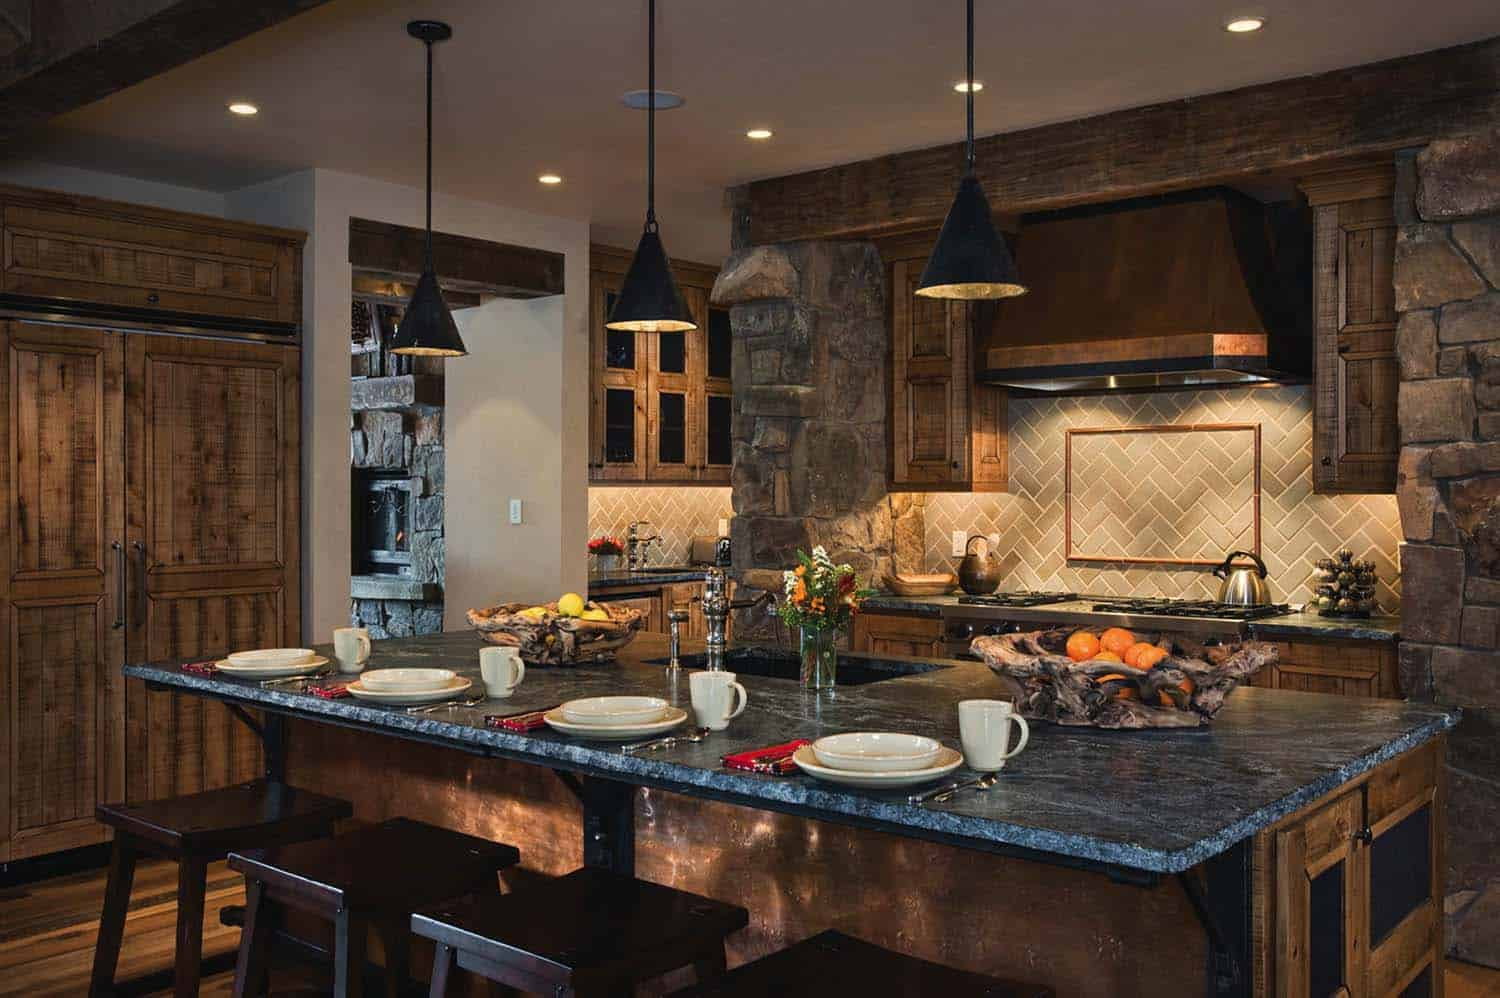 40 Unbelievable Rustic Kitchen Design Ideas To Steal